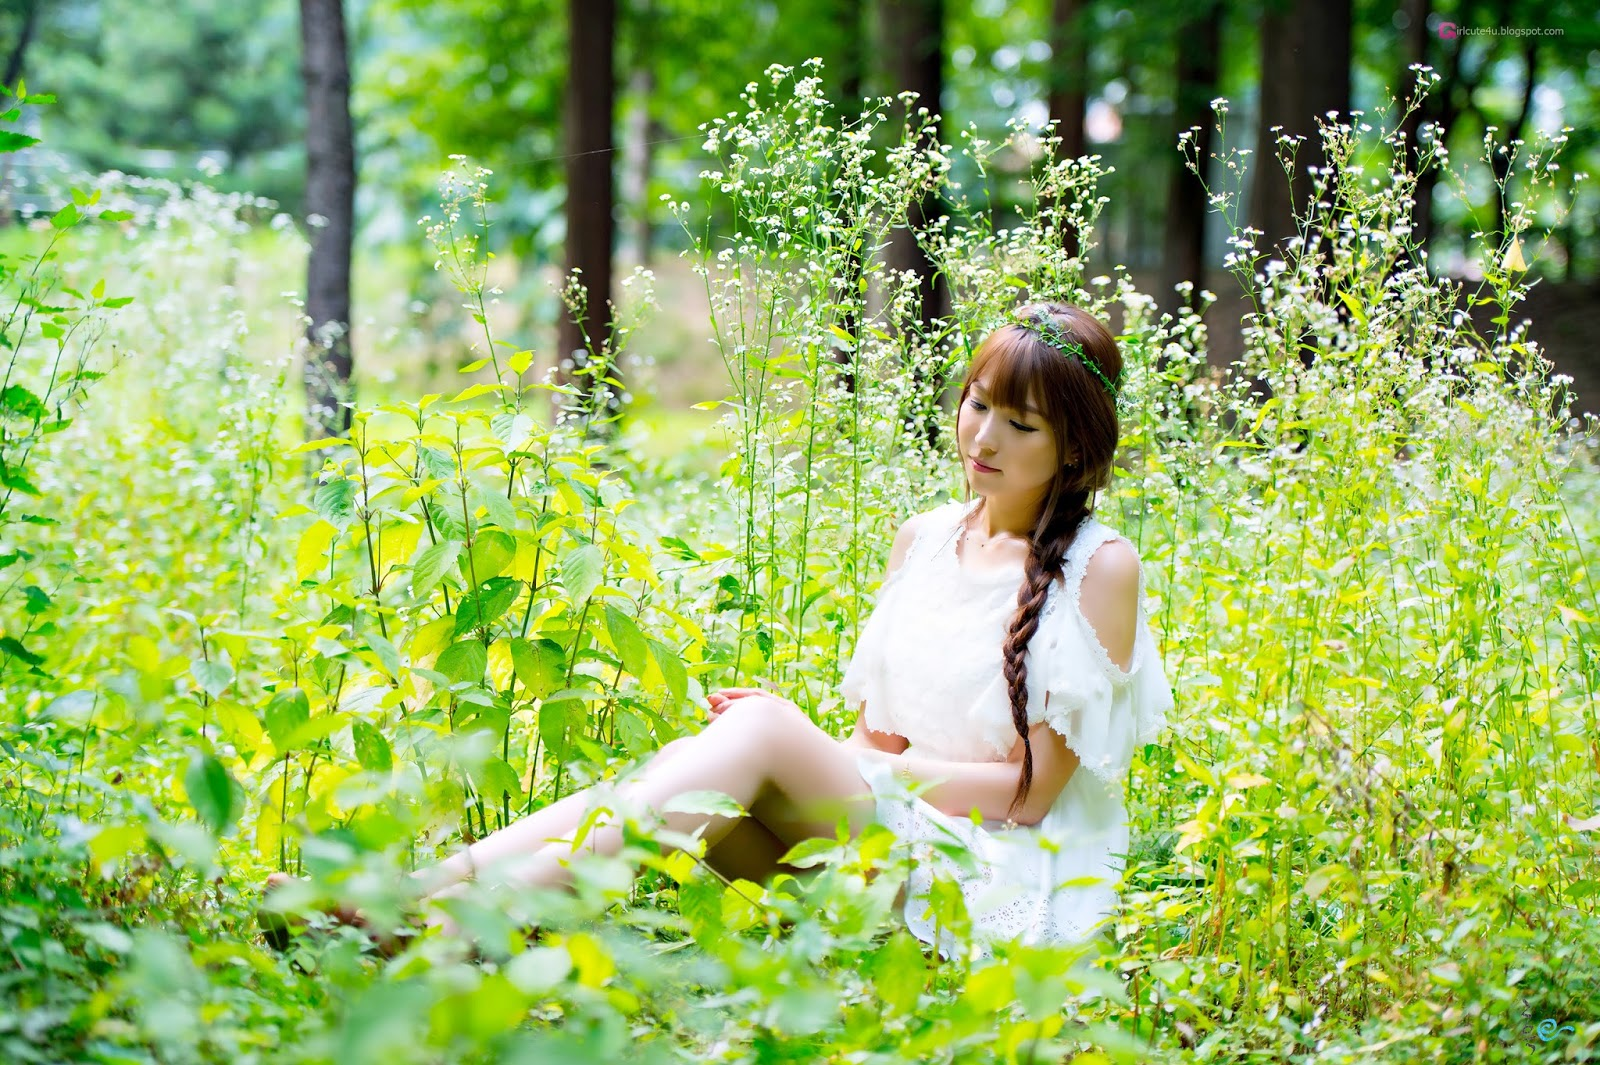 4 Lovely Lee Eun Hye In Outdoor Photo Shoot - very cute asian girl-girlcute4u.blogspot.com